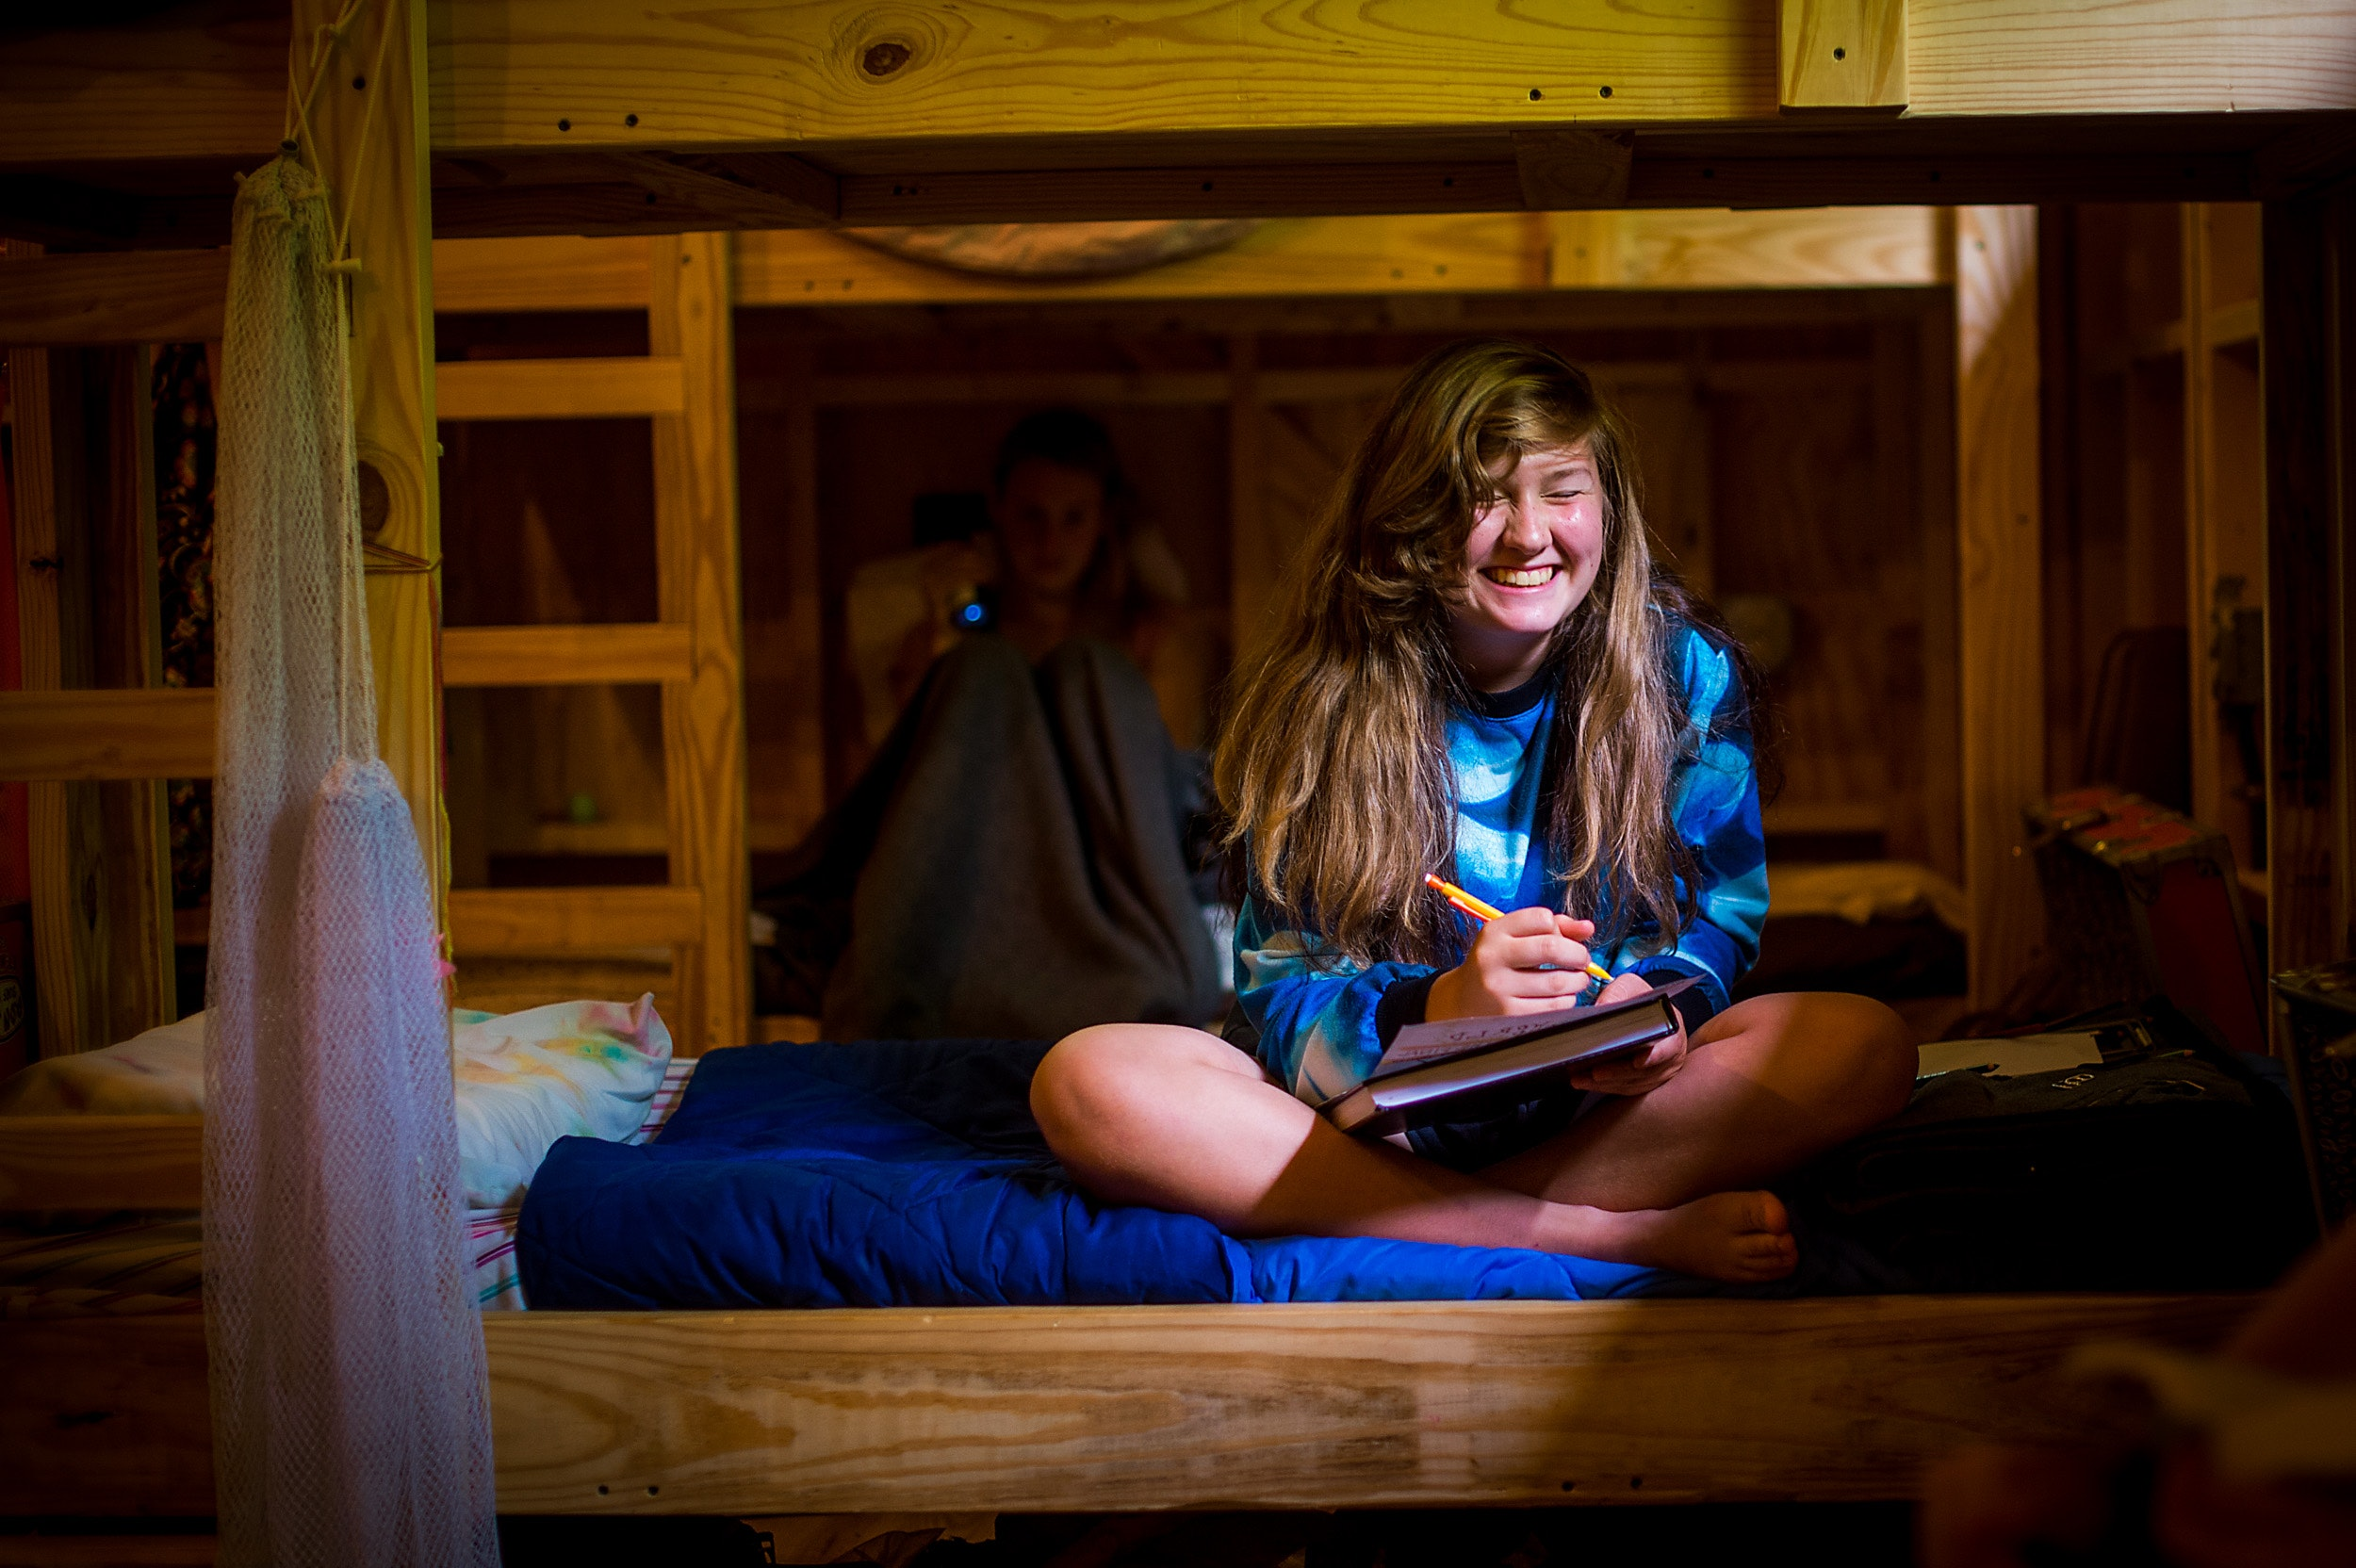 Smiling in the cabin at keystone summer camp for girls in north carolina.jpg?ixlib=rails 2.1